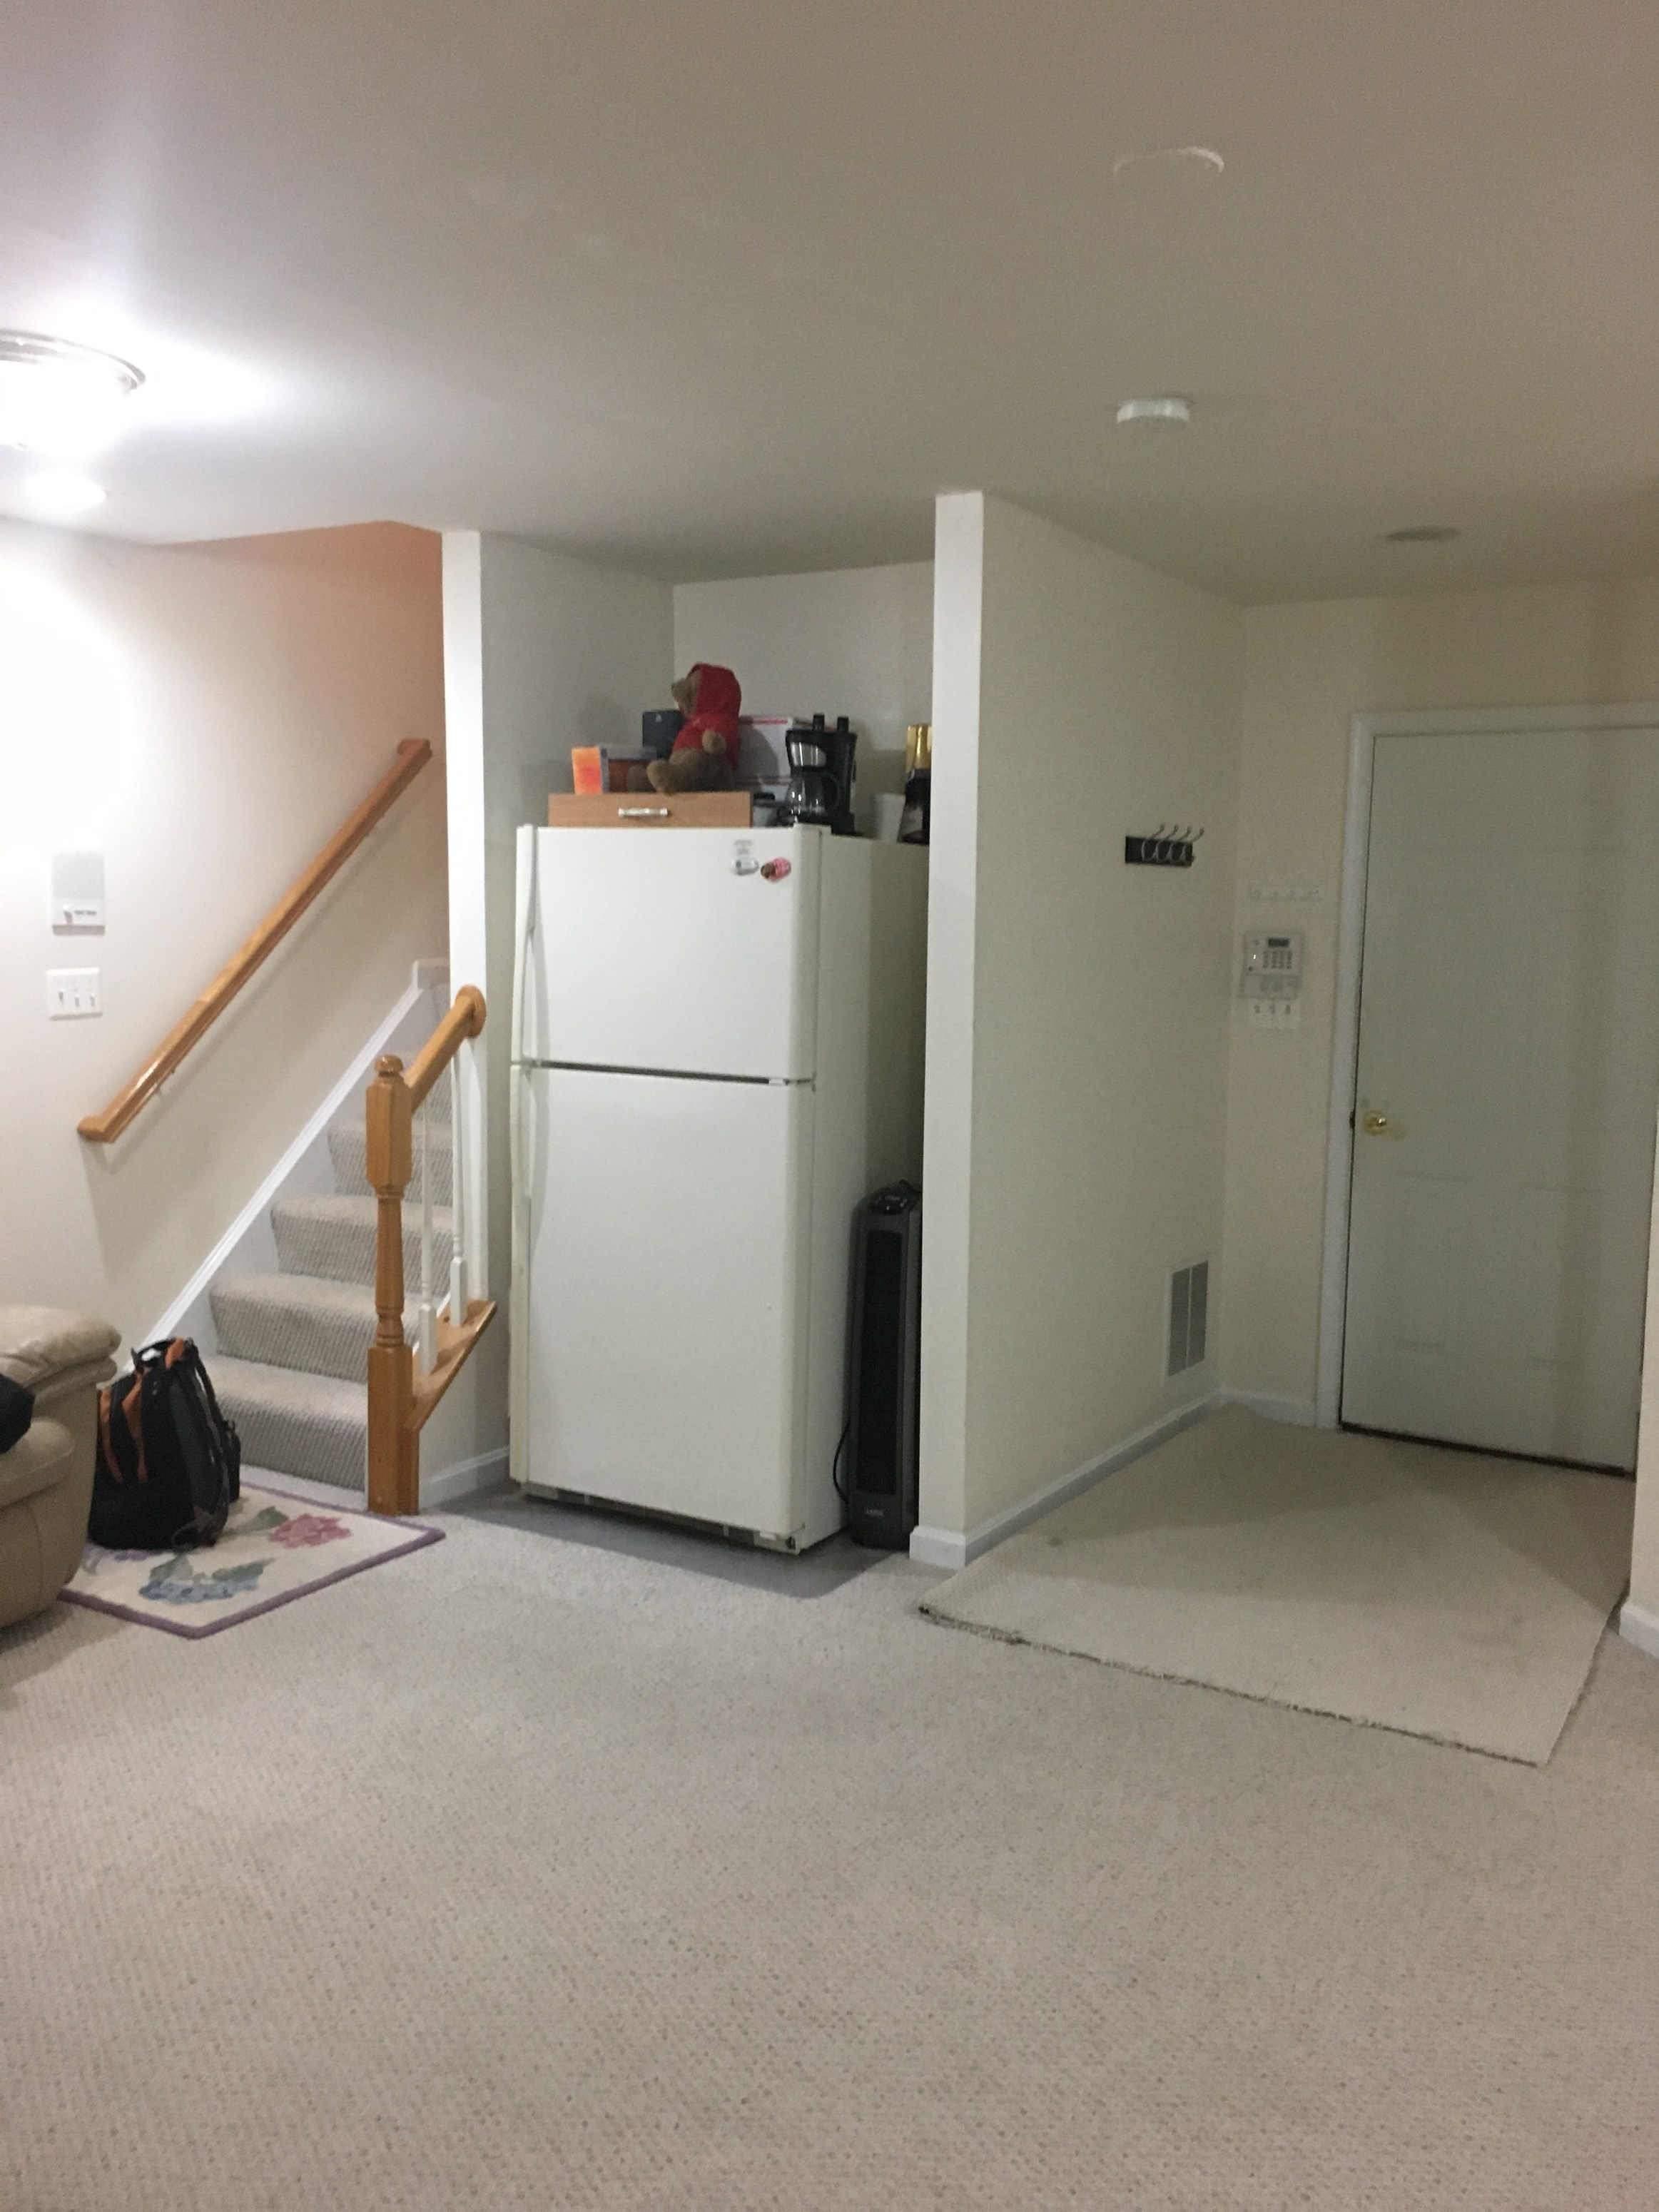 Fully Furnished Townhouse Basement For Rent For Singles Only 1